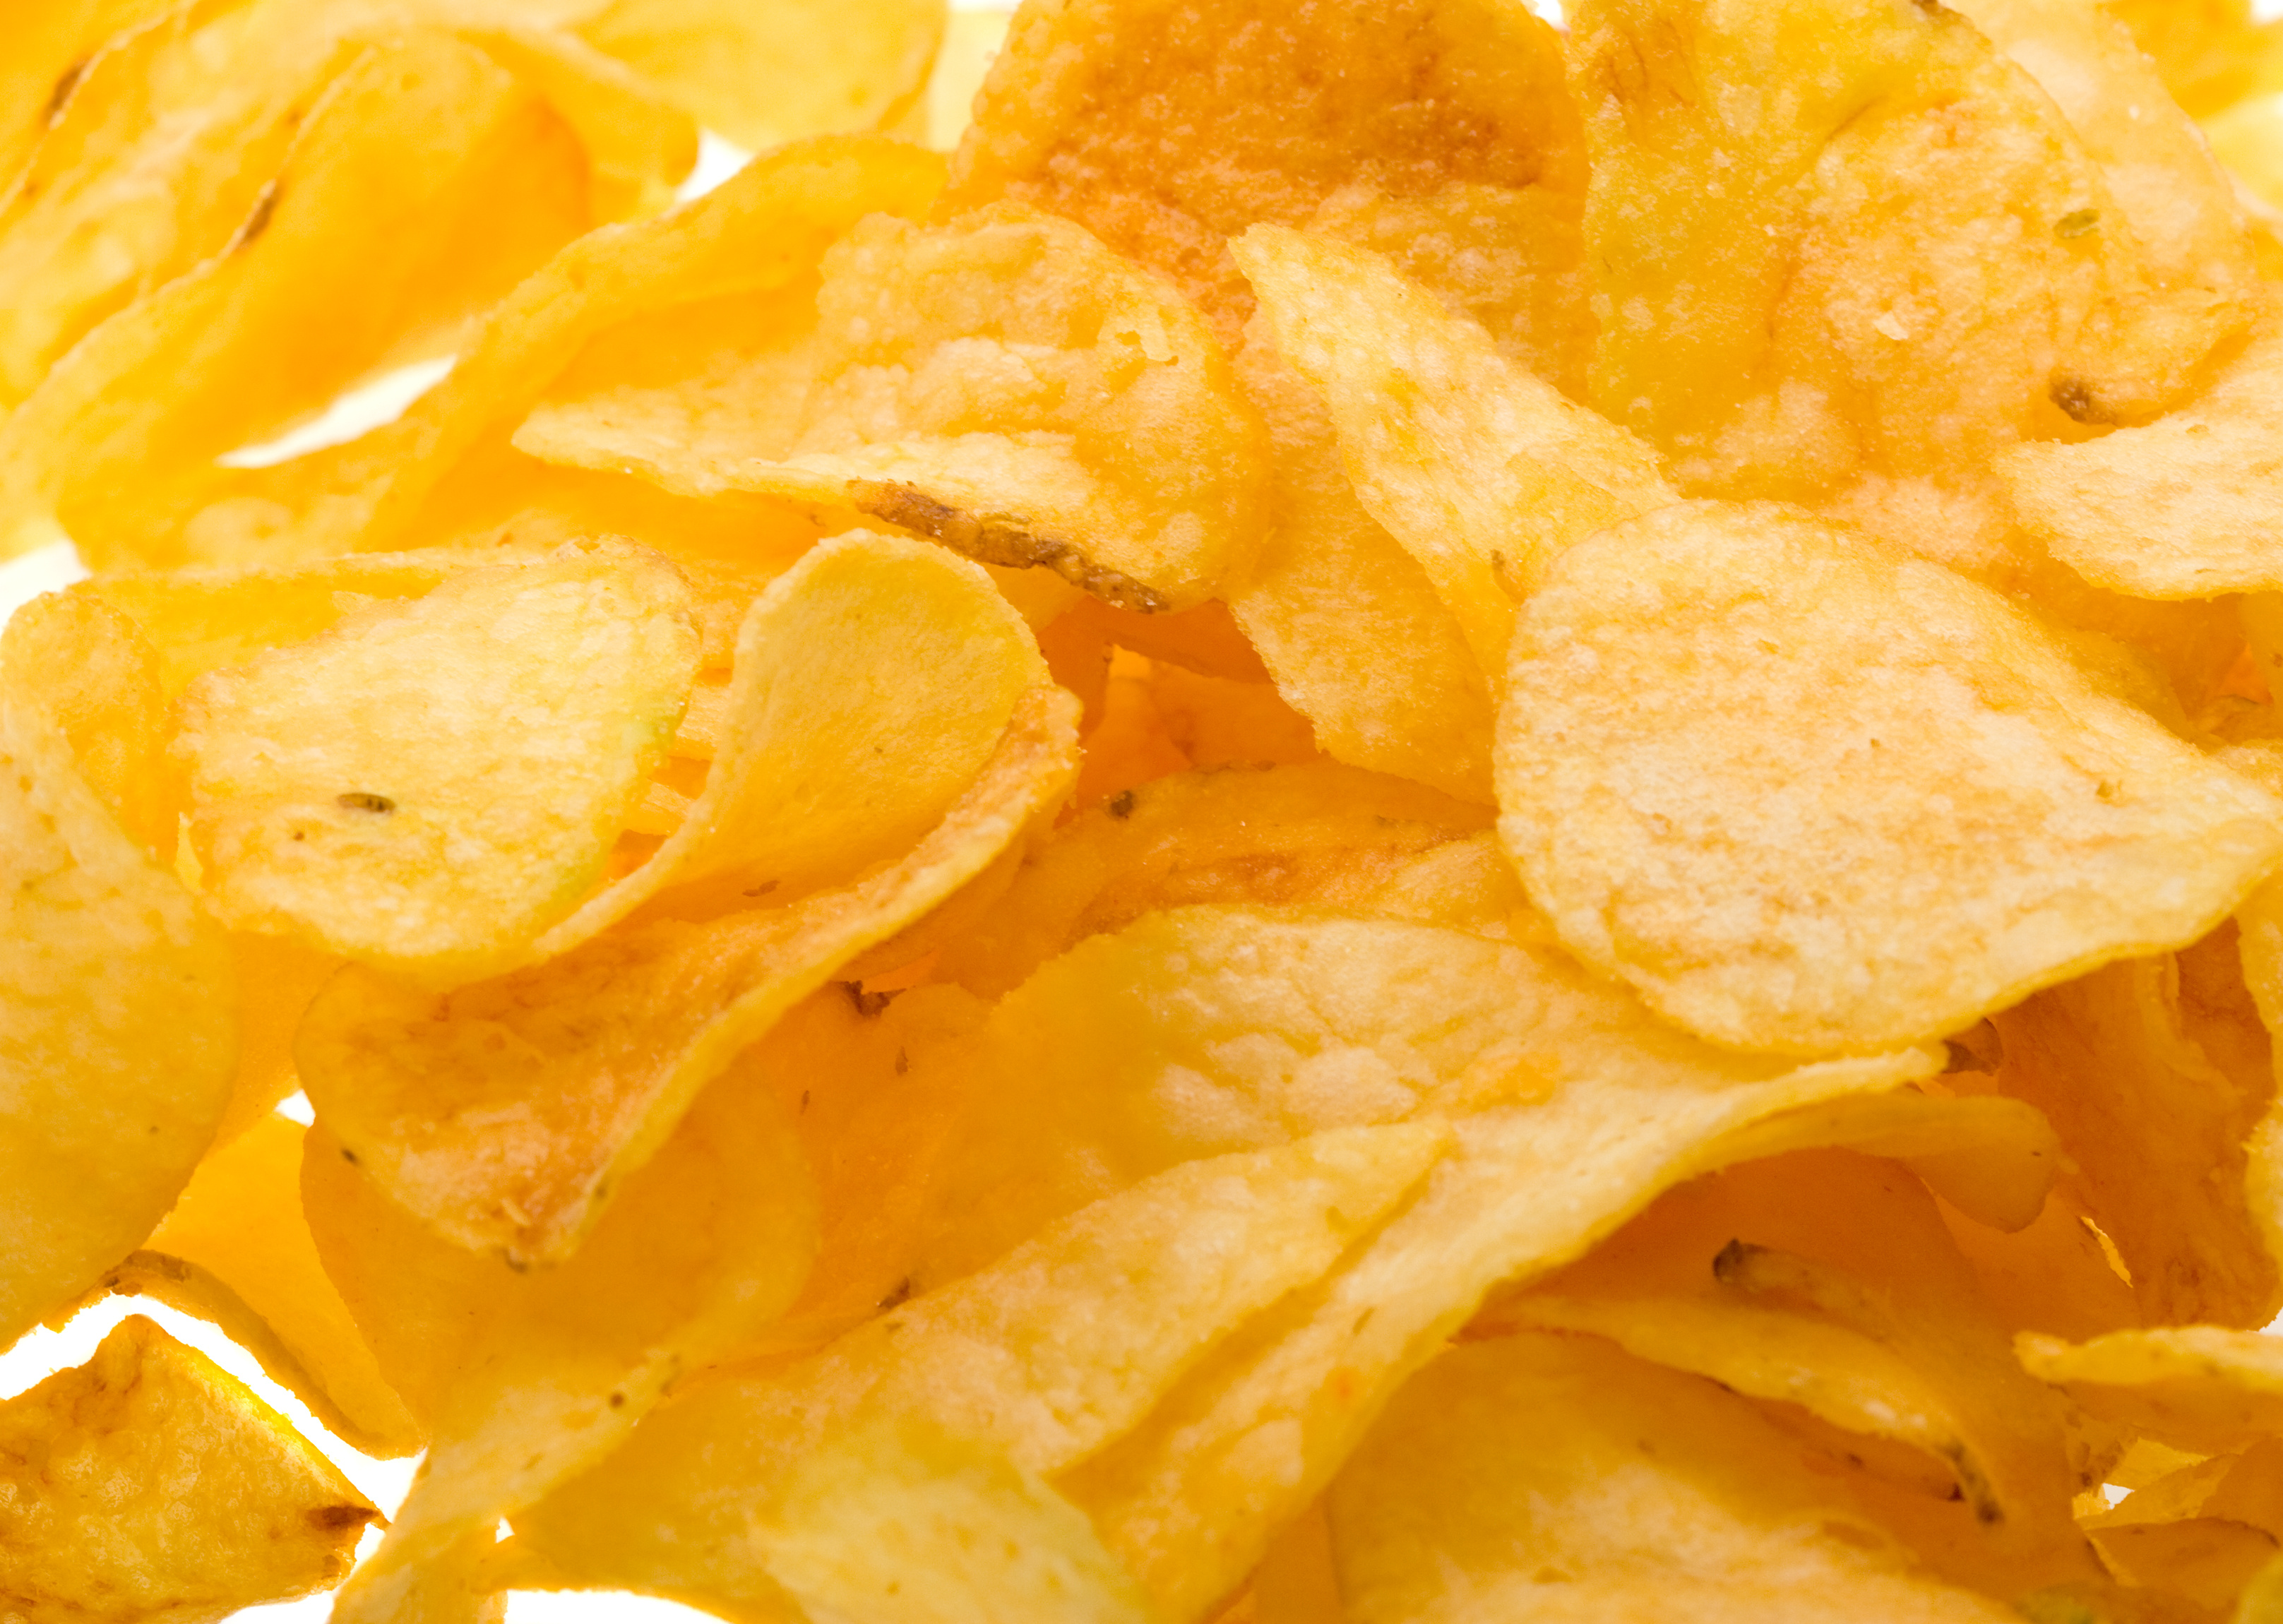 Close up potato chips background 3233x2300